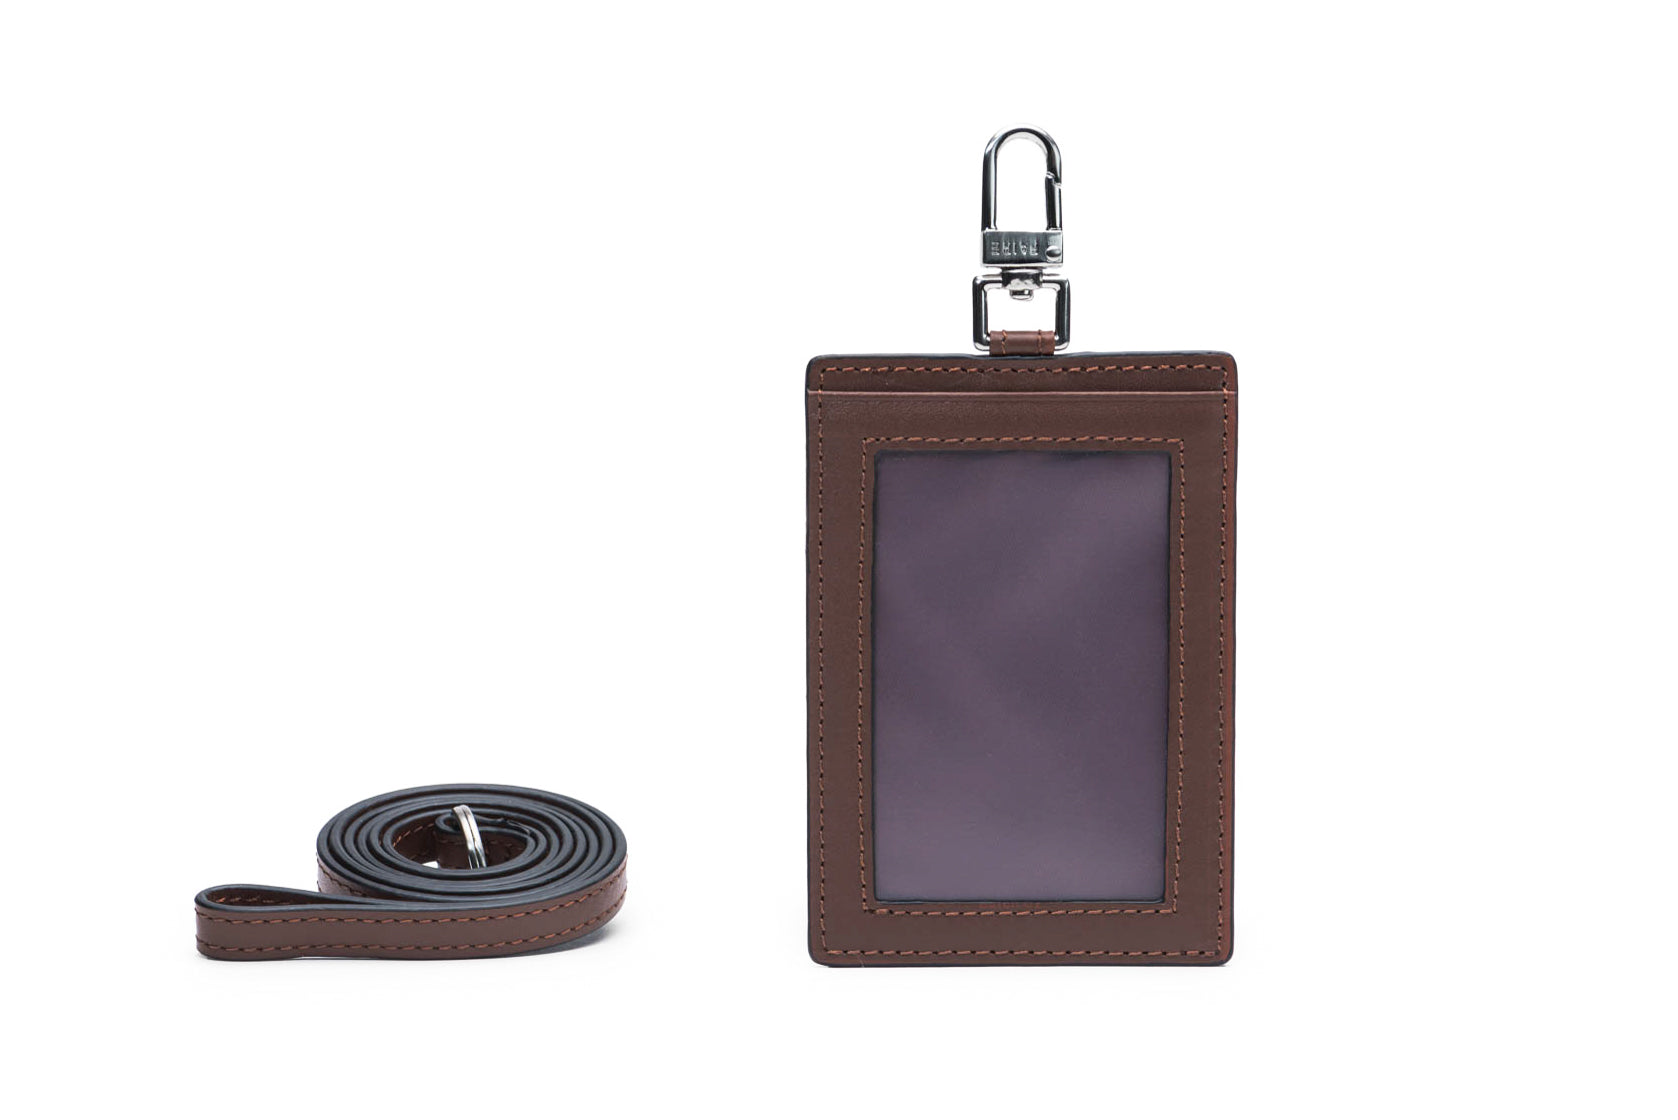 Specter VT Cardholder with Lanyard | Leather Accessories